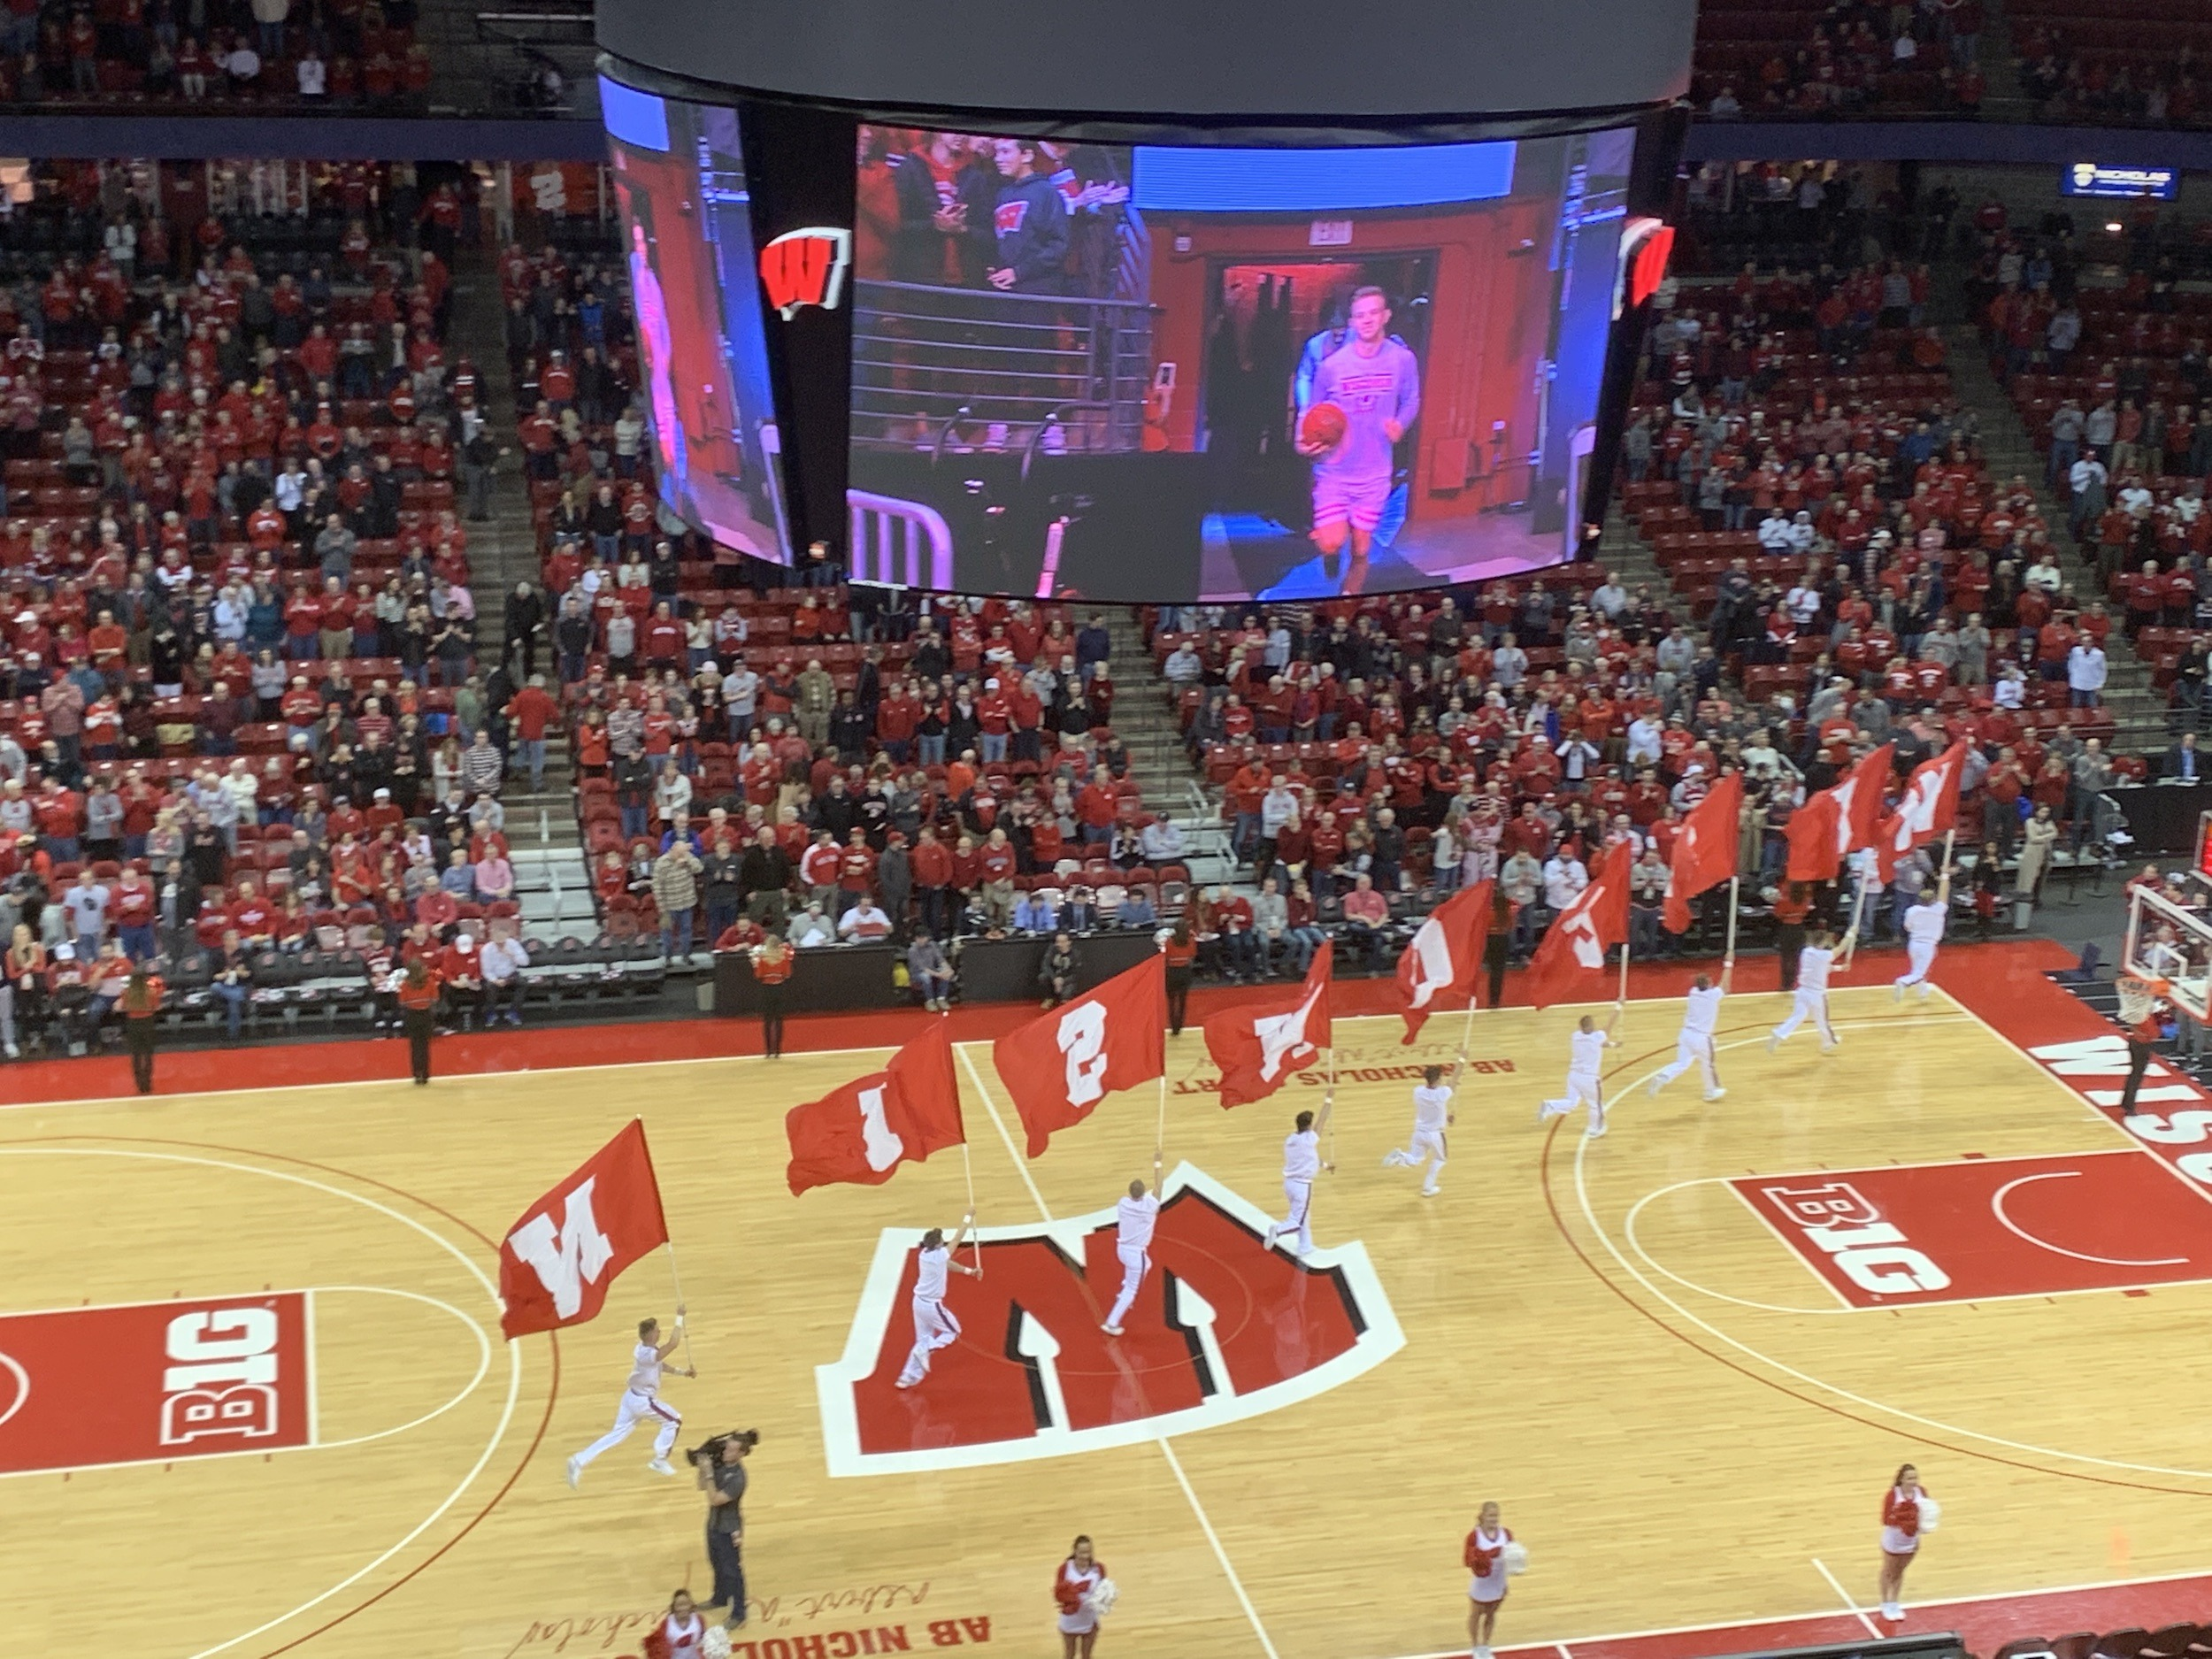 UW Madison Badgers Basketball at Kohl Center